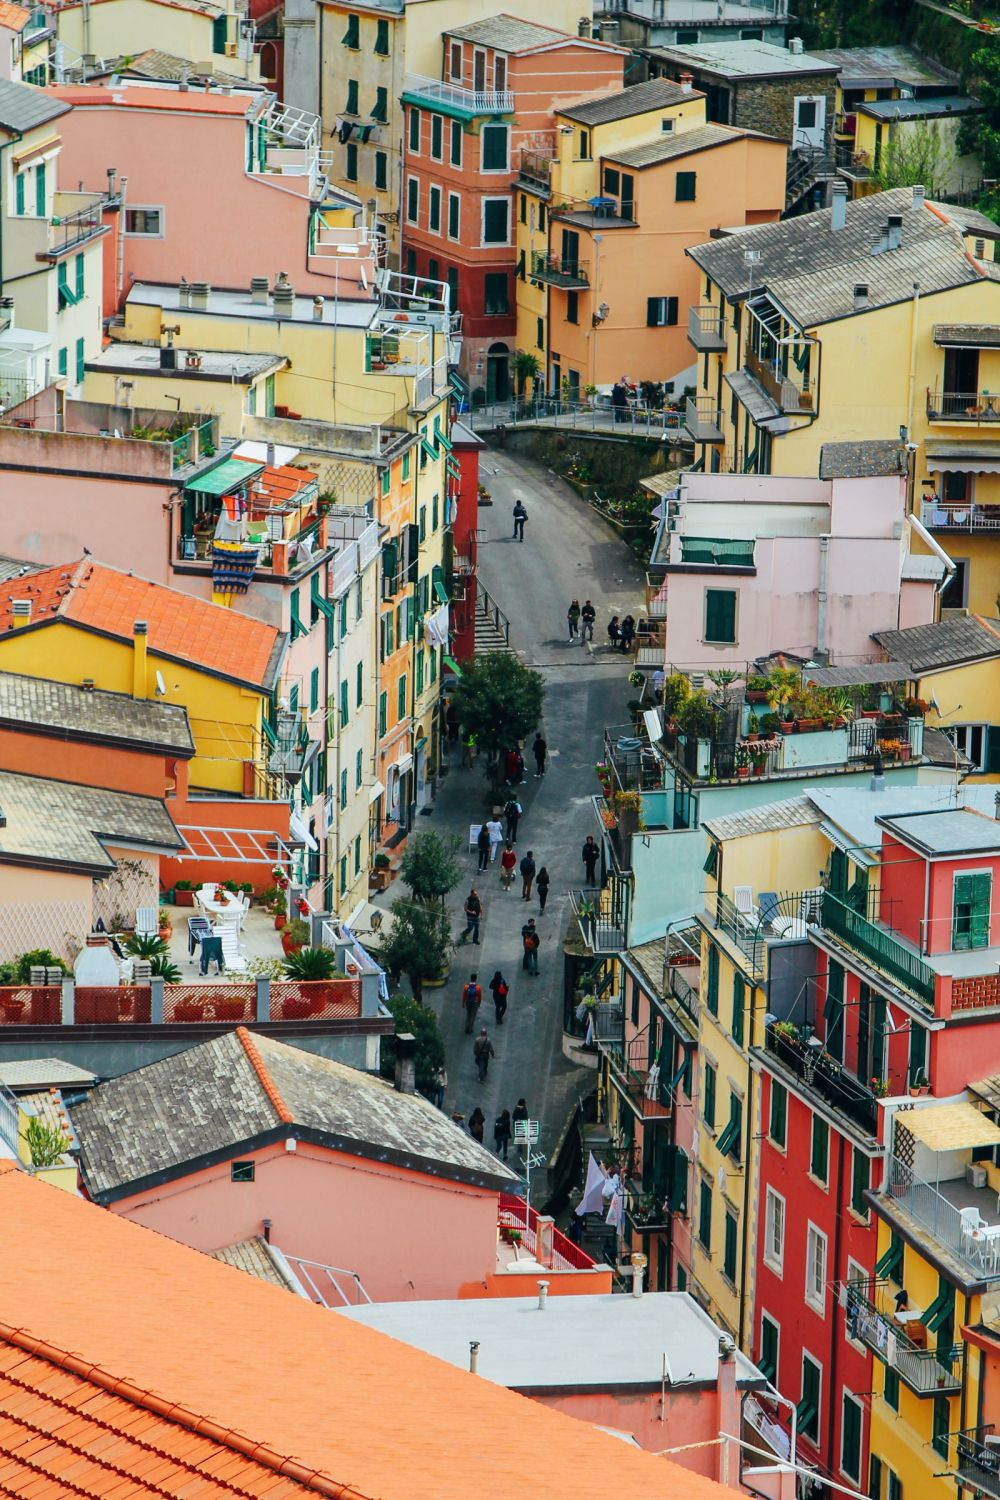 Riomaggiore in Cinque Terre, Italy - The Photo Diary! [1 of 5] (7)